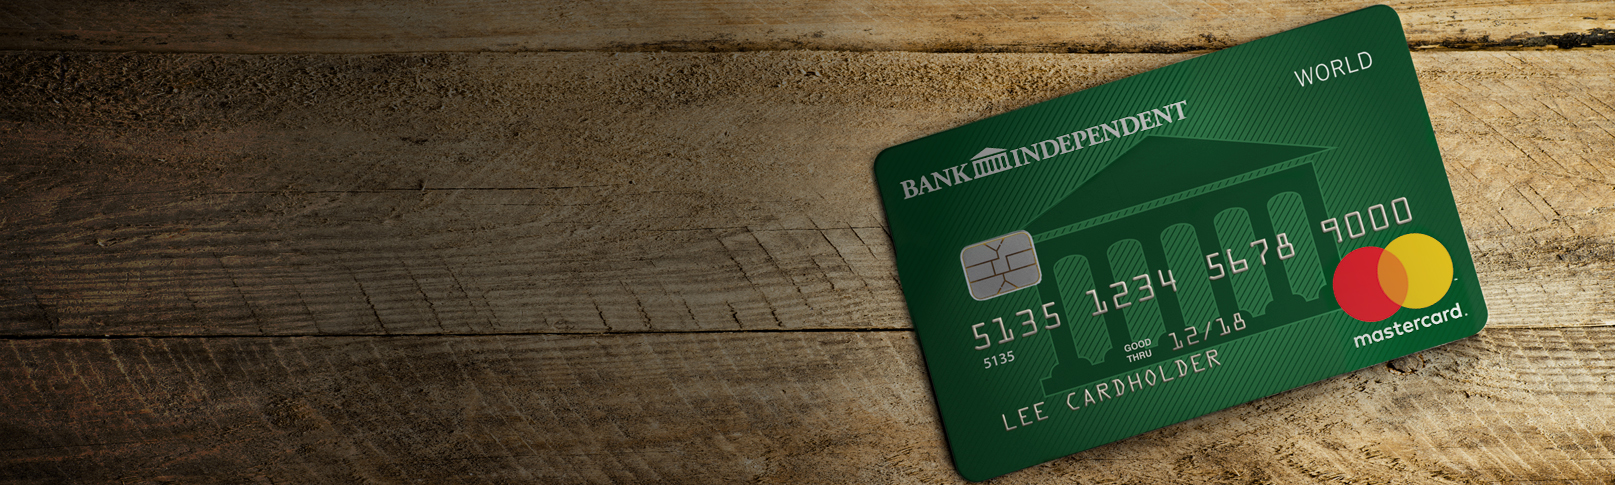 Bank Independent Personal Credit Cards With Great Benefits Service